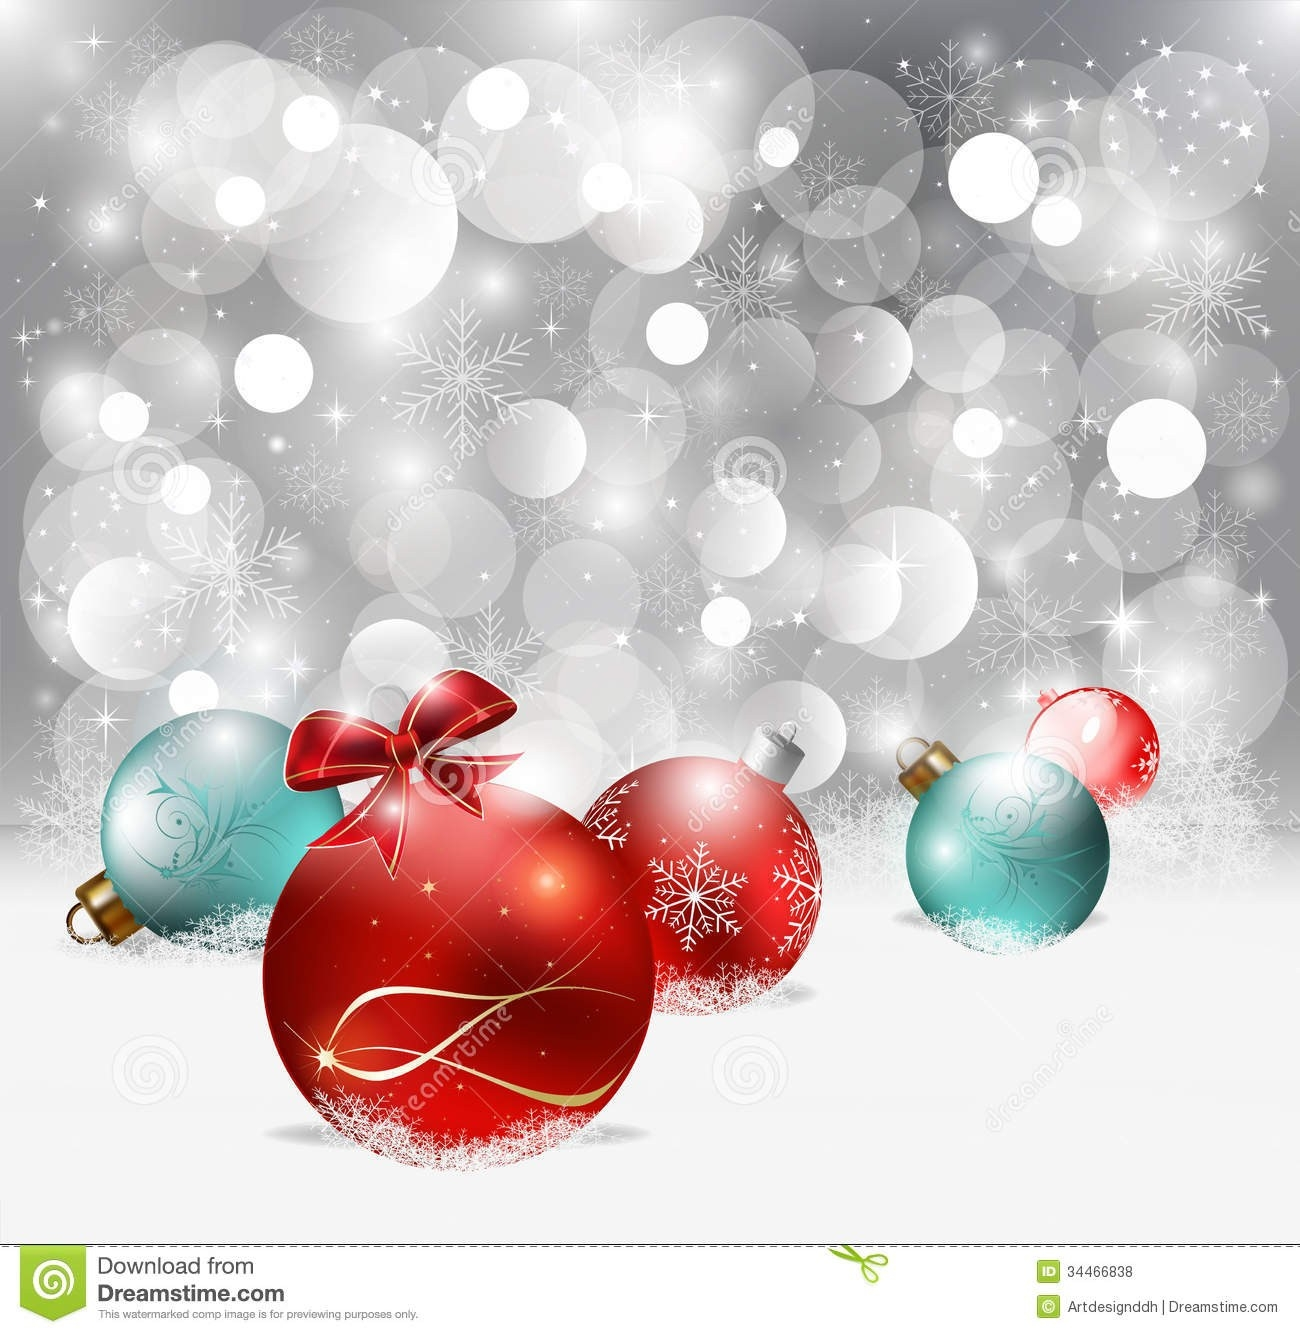 Christmas Clipart Background in Free Christmas Background Clipart.